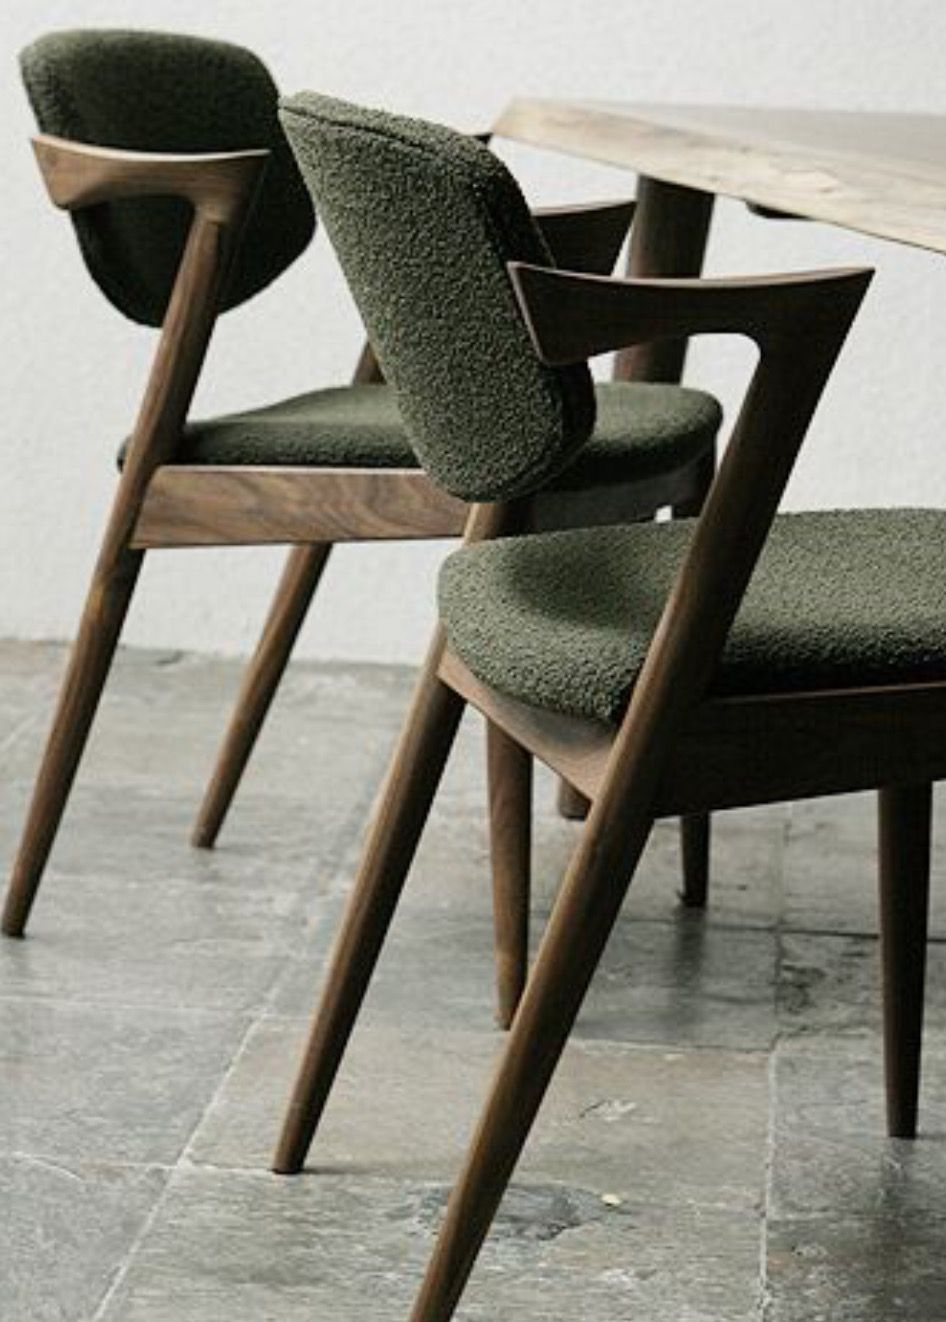 Obviously You Are Not Only Looking For Amazing Dining Chairs But Also Comfy Ones Check Out This Idea To Inspi Furniture Design Modern Furniture Dining Chairs